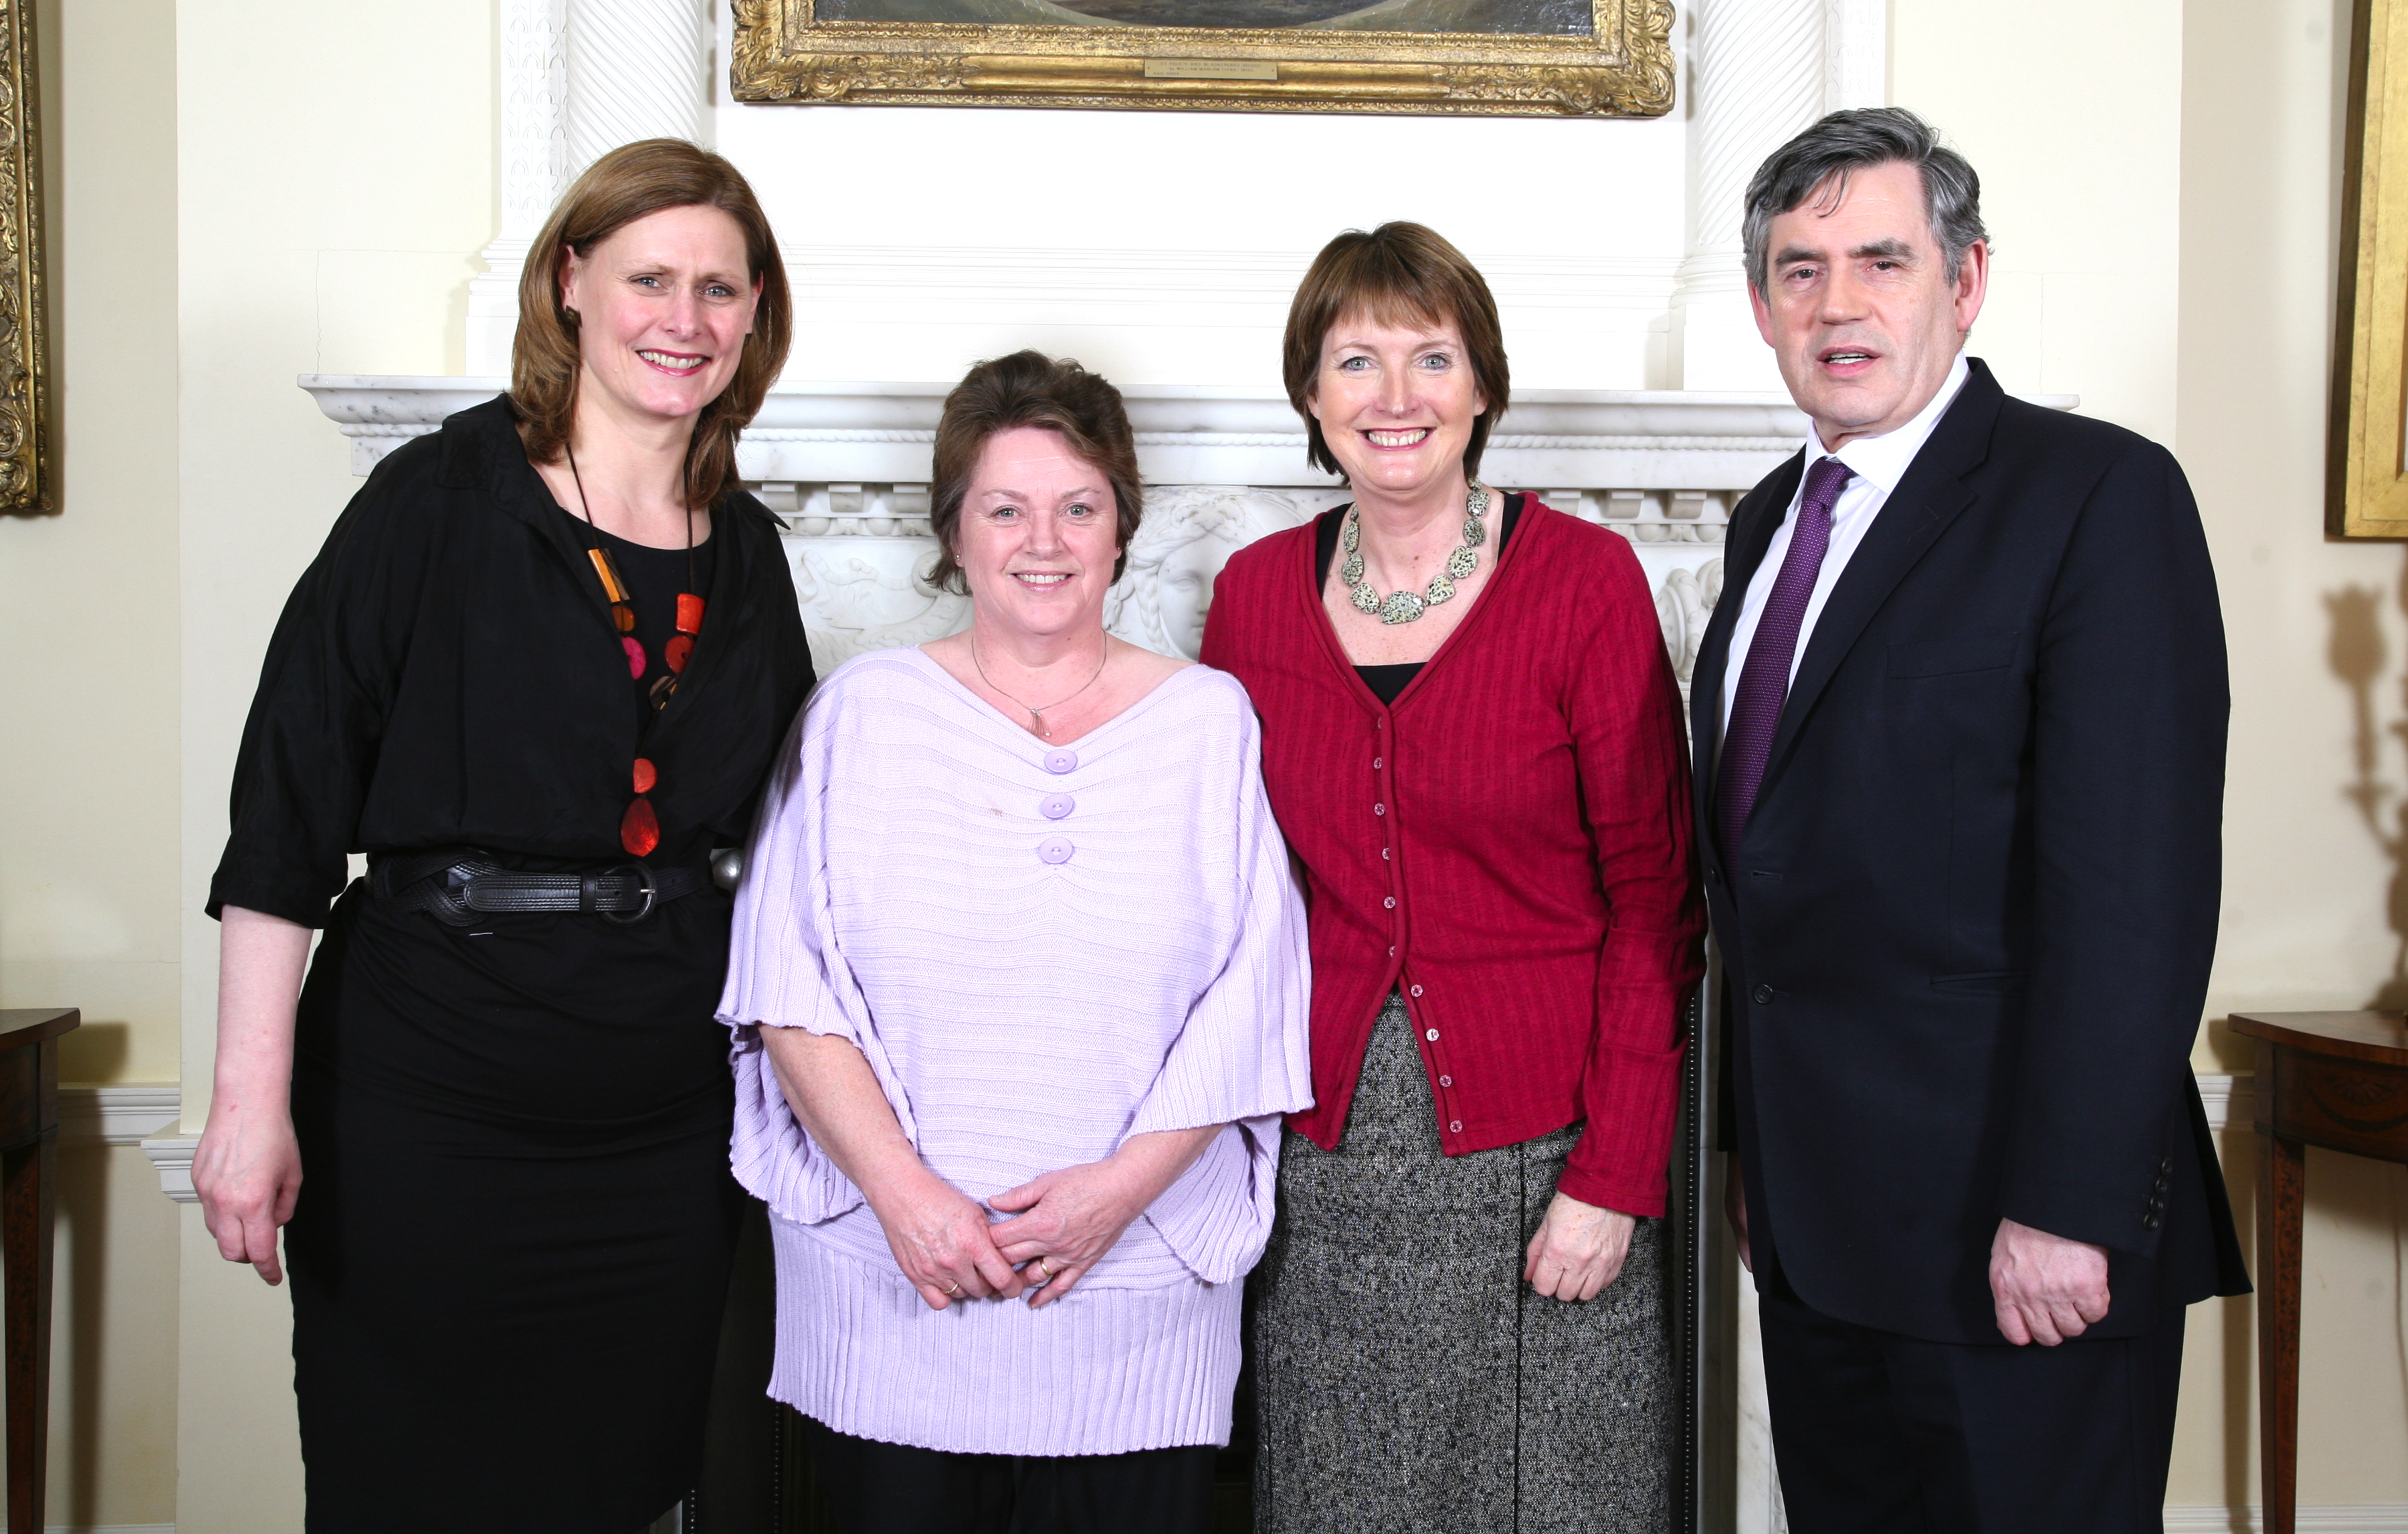 international women's day reception at no 10